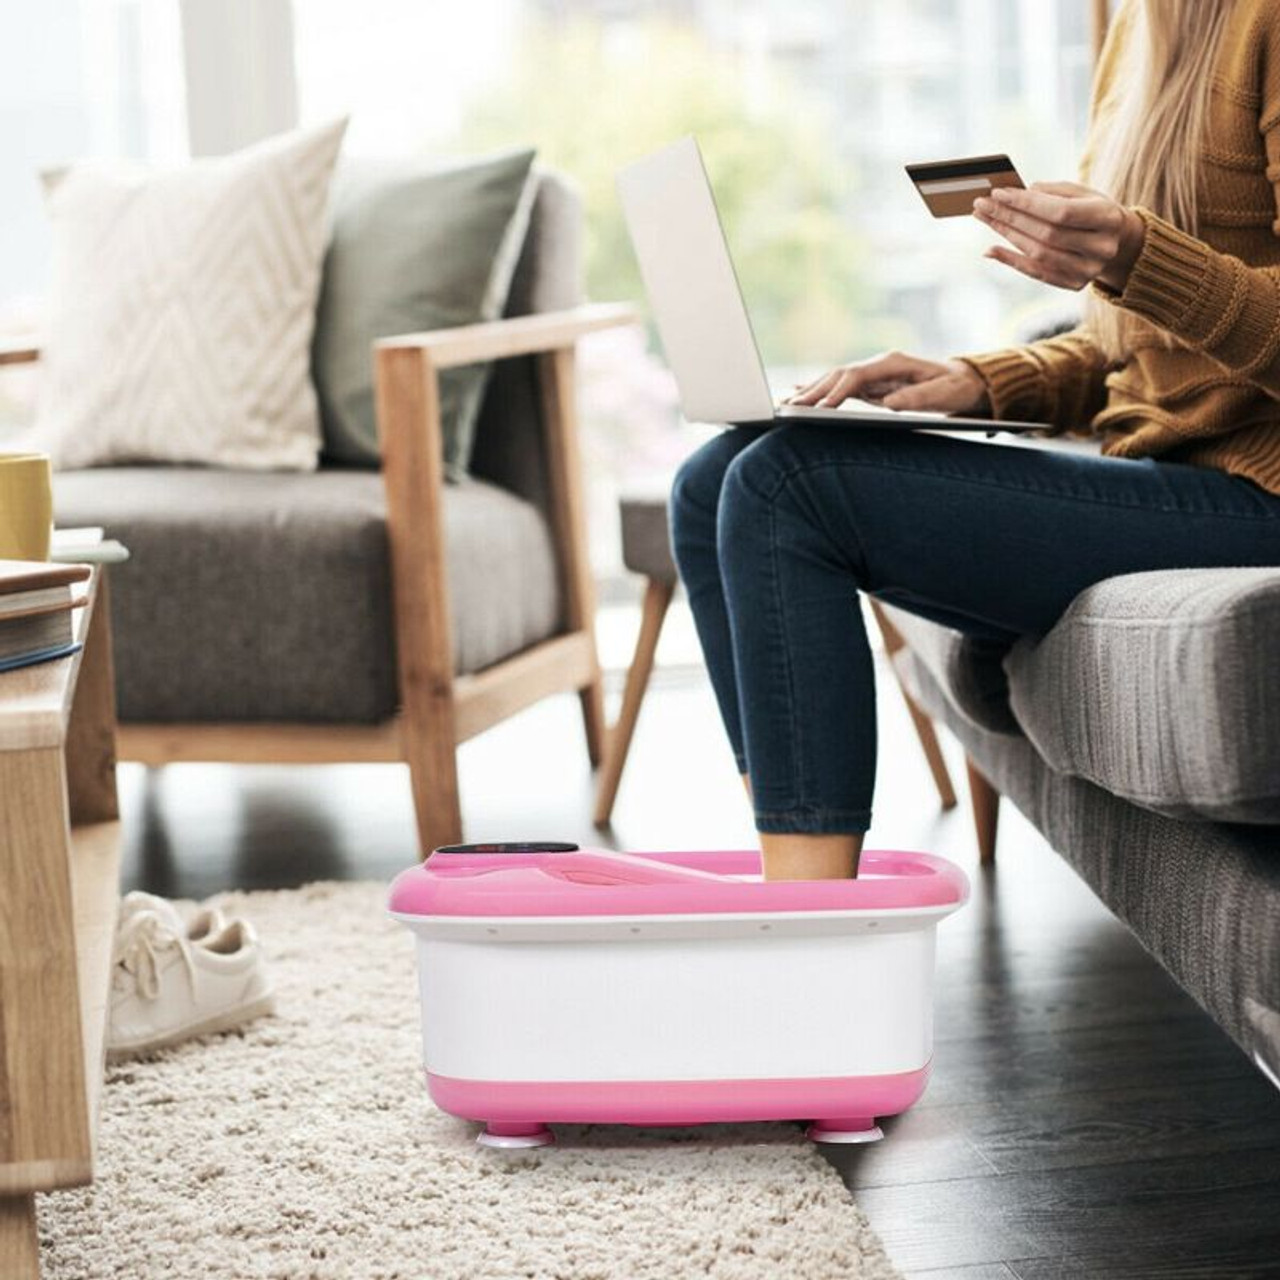 Portable Electric Automatic Roller Foot Bath Massager